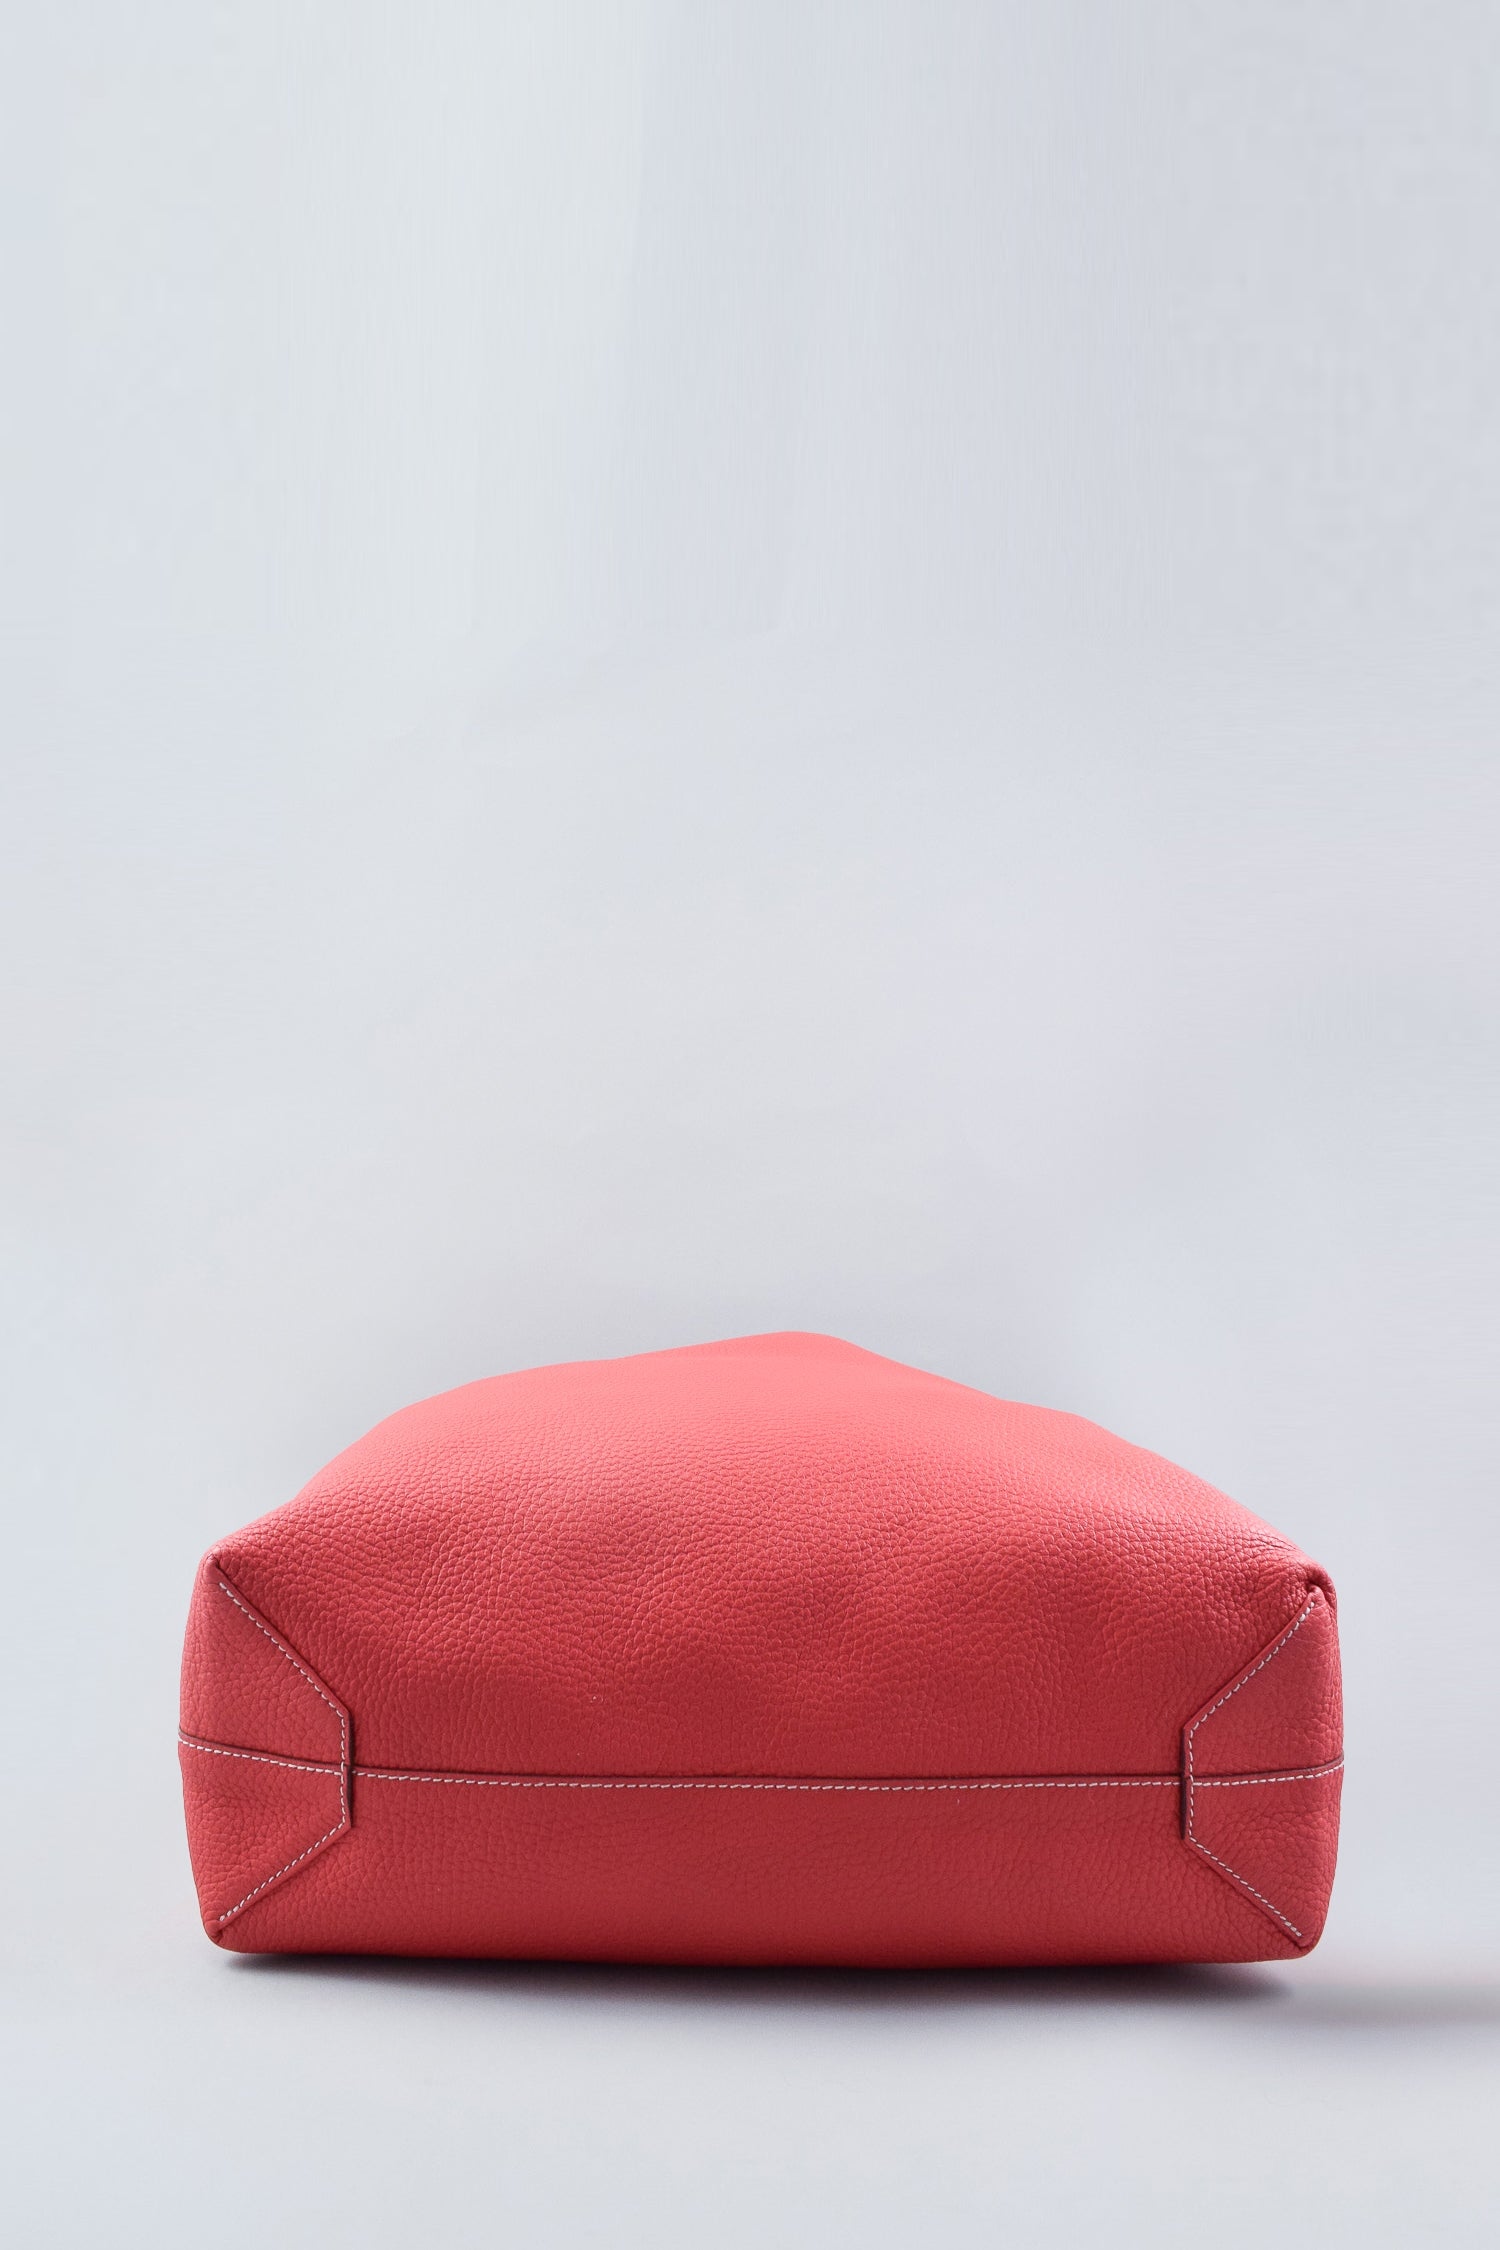 Hermes Red Clemence Double Sens 45 Tote